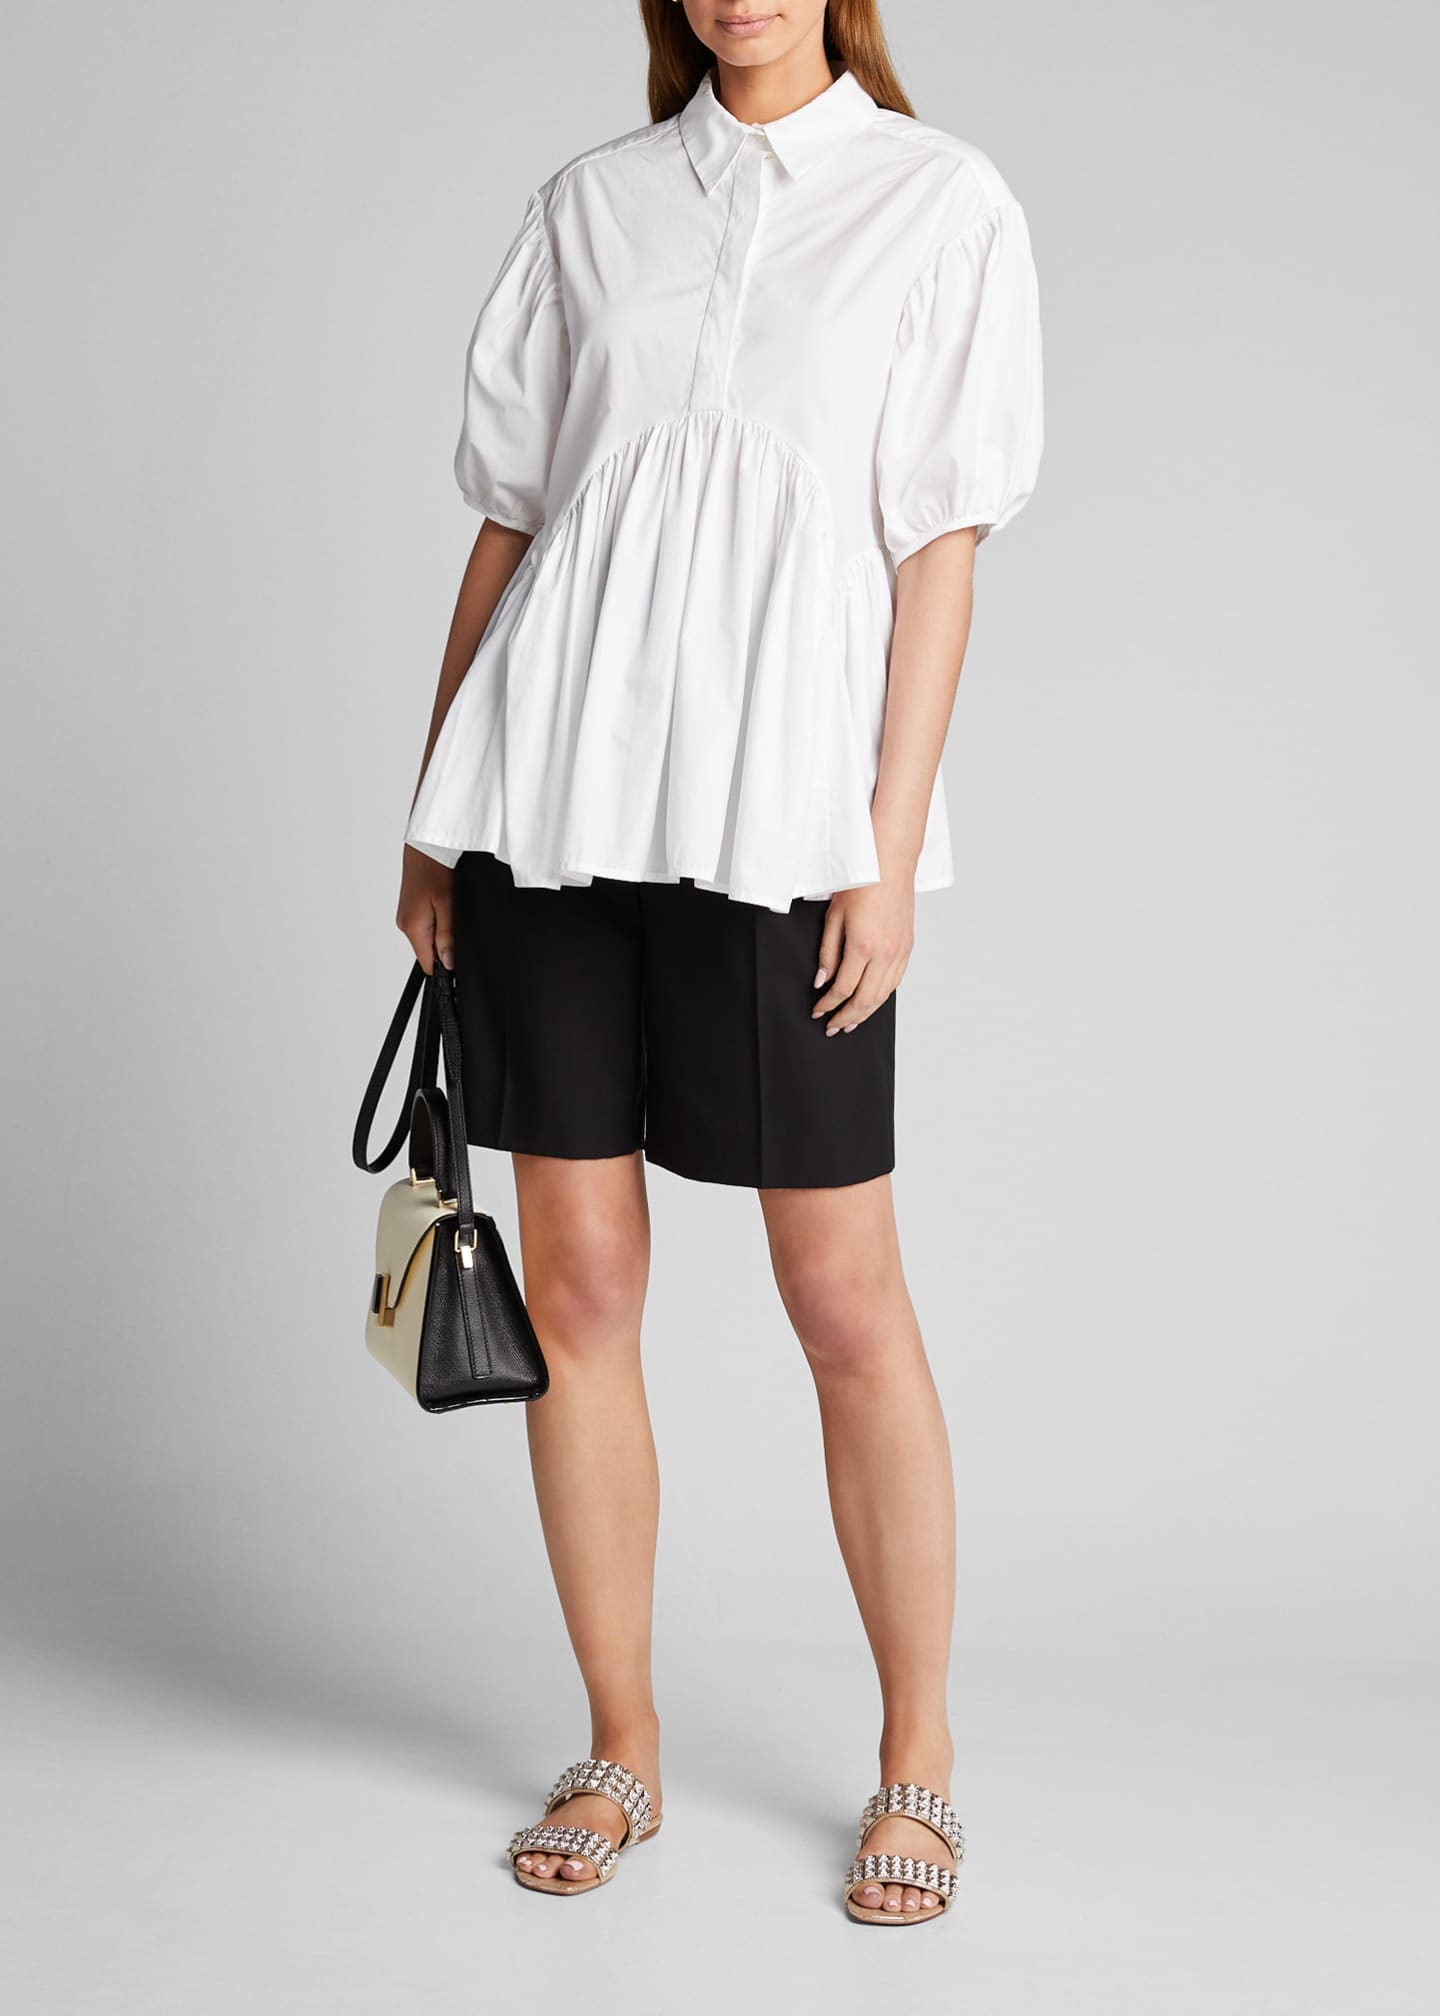 Cecilie Bahnsen Puff-Sleeve Cotton Top